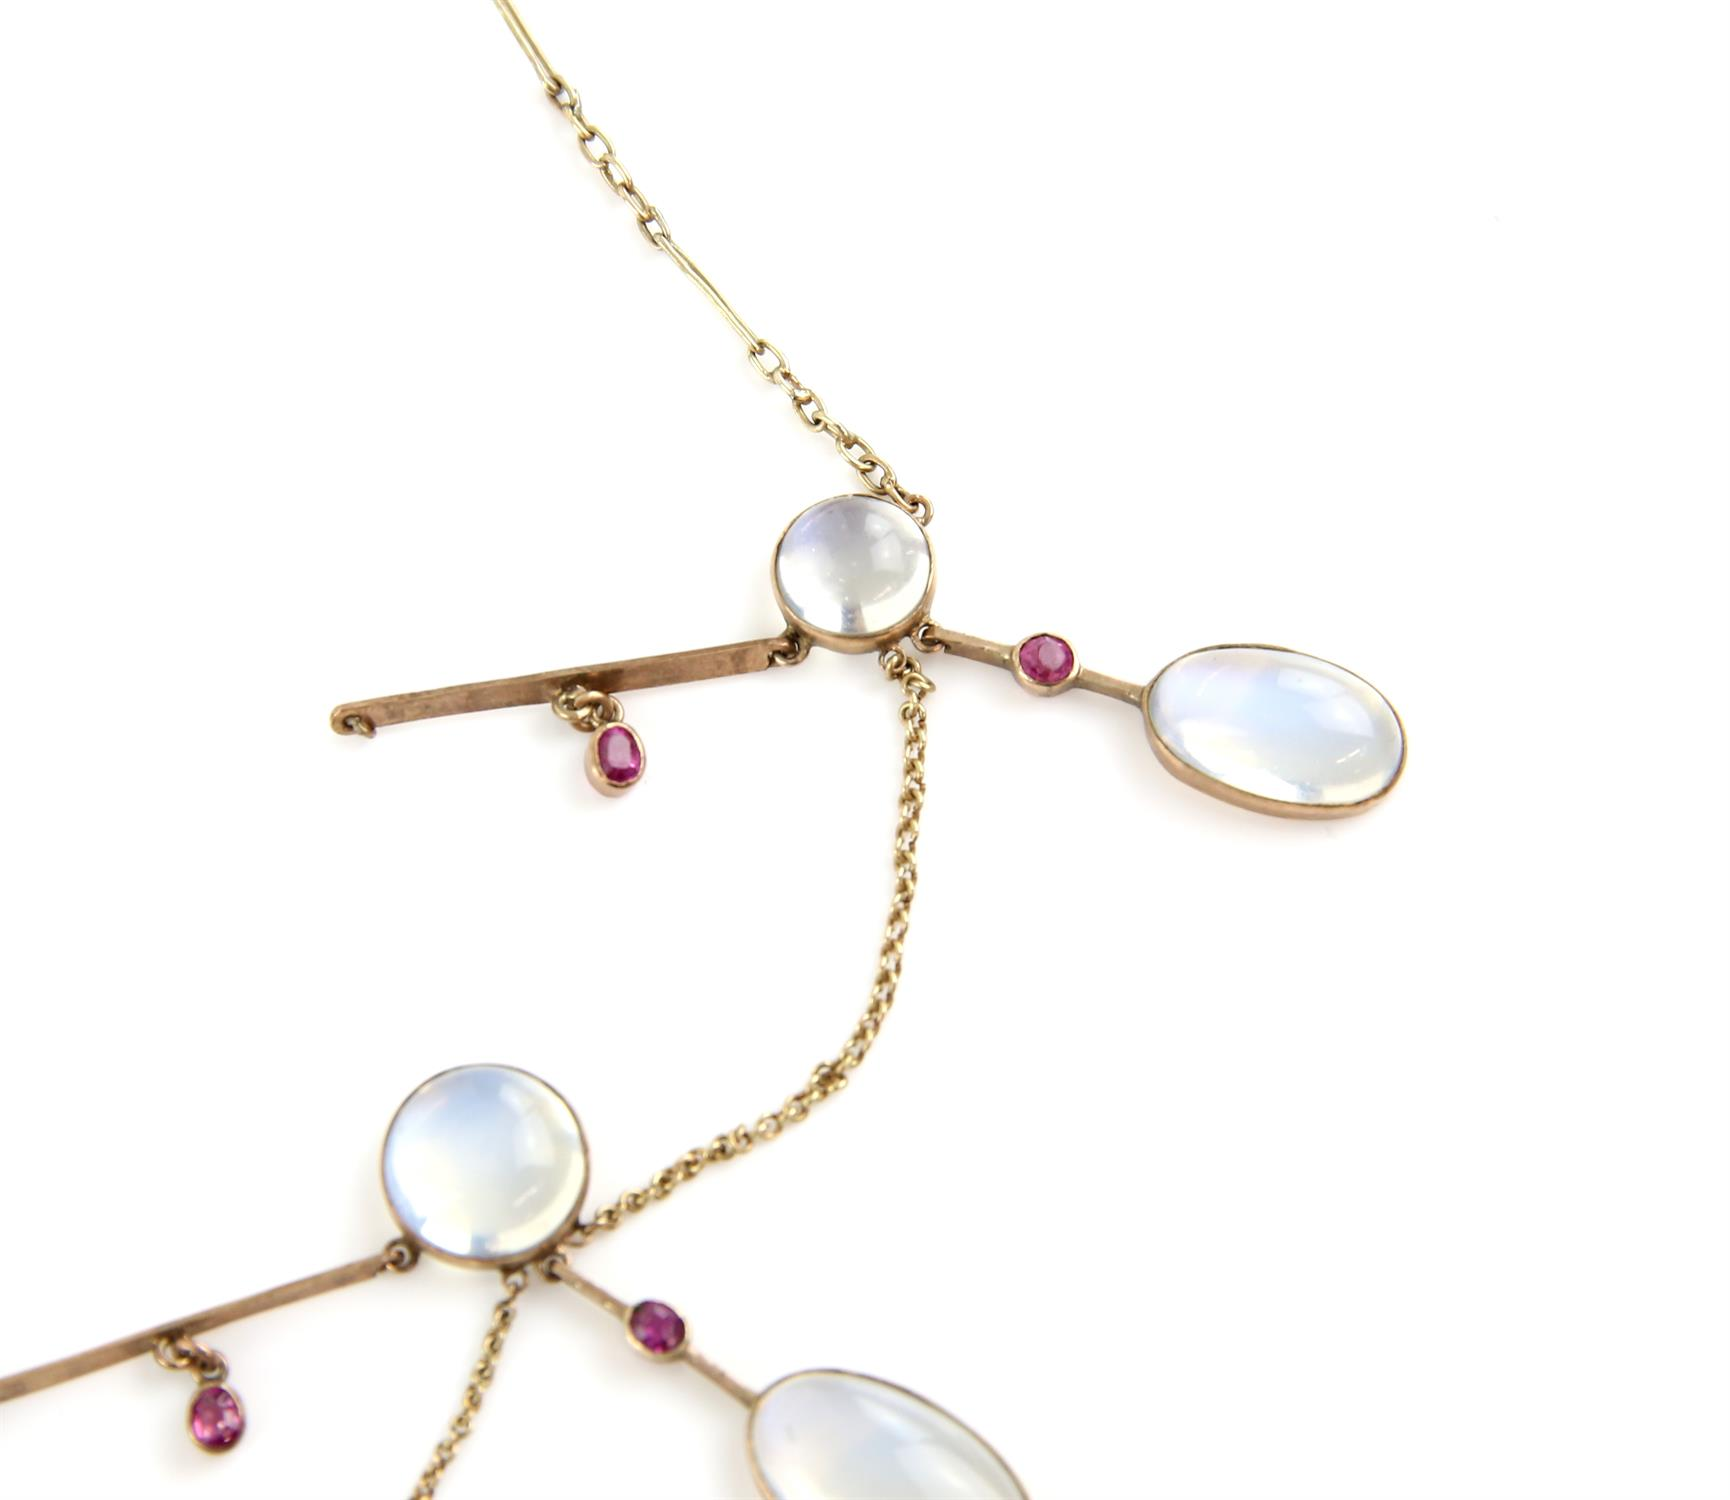 Early 20th C moonstone and ruby fringe necklace, designed as three moonstone drops, - Image 2 of 2